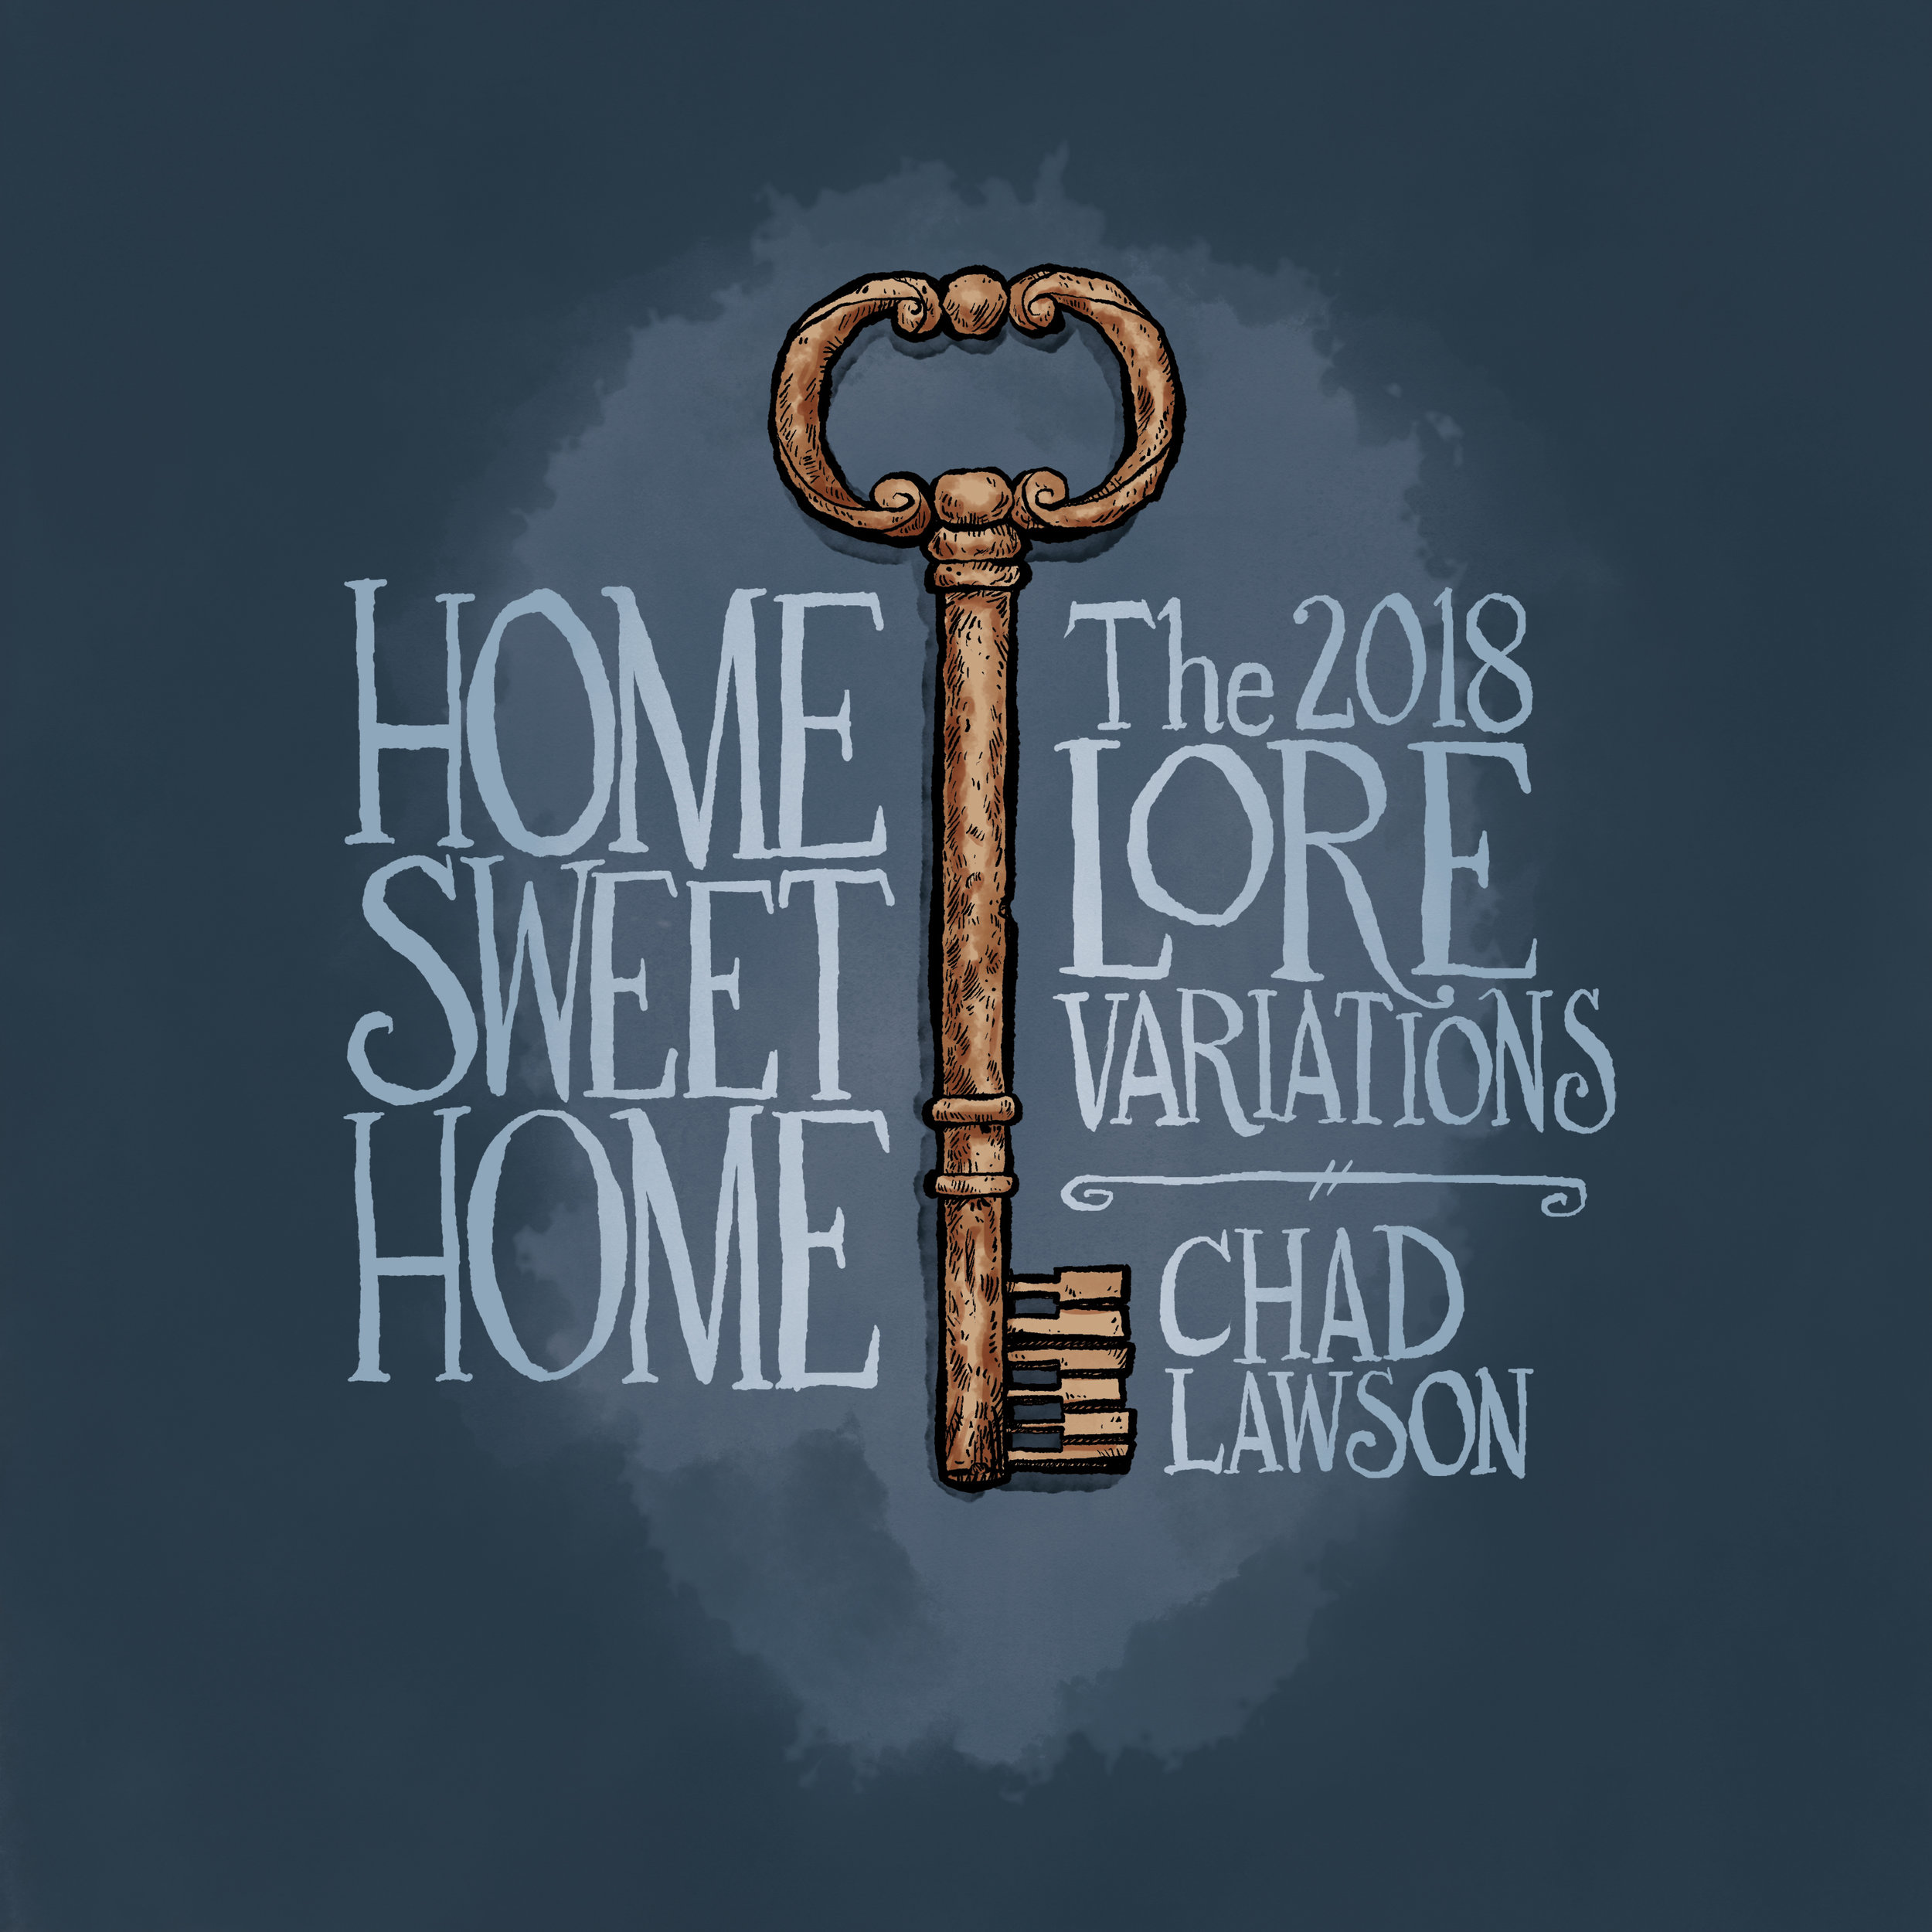 Chad Lawson - Home Sweet Home: The 2018 Lore Variations  Release Date: November 2, 2018 Label: Hillset Records  SERVICE: Mastering NUMBER OF DISCS: 1 GENRE: Classical FORMAT: CD